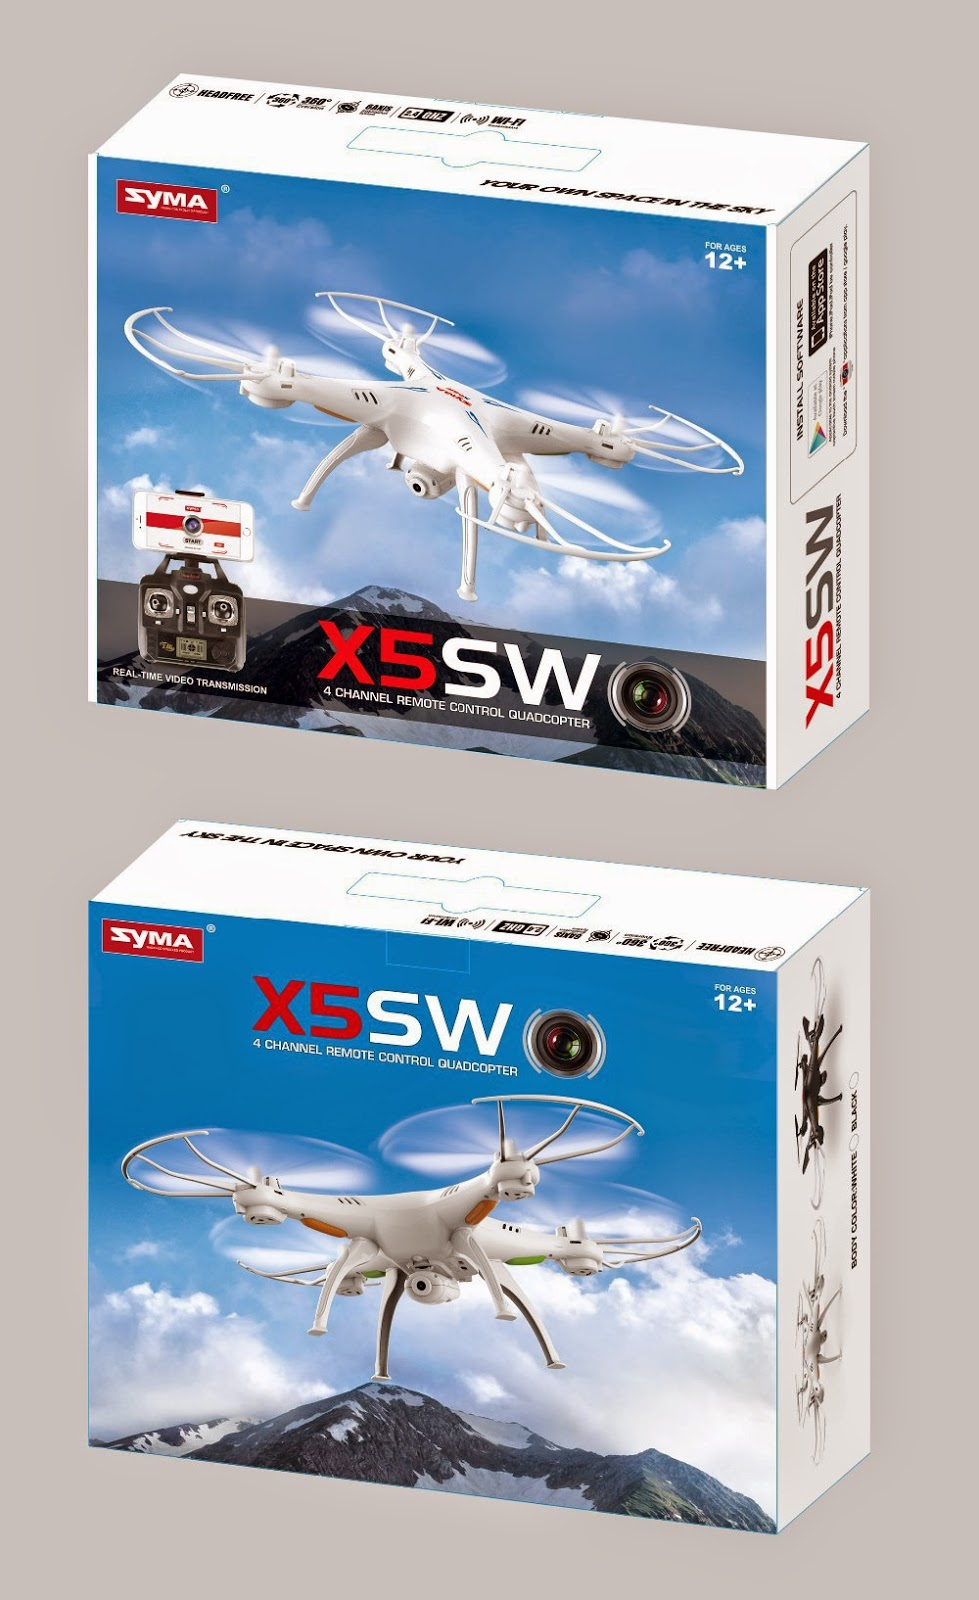 Syma X5Sw Unboxing